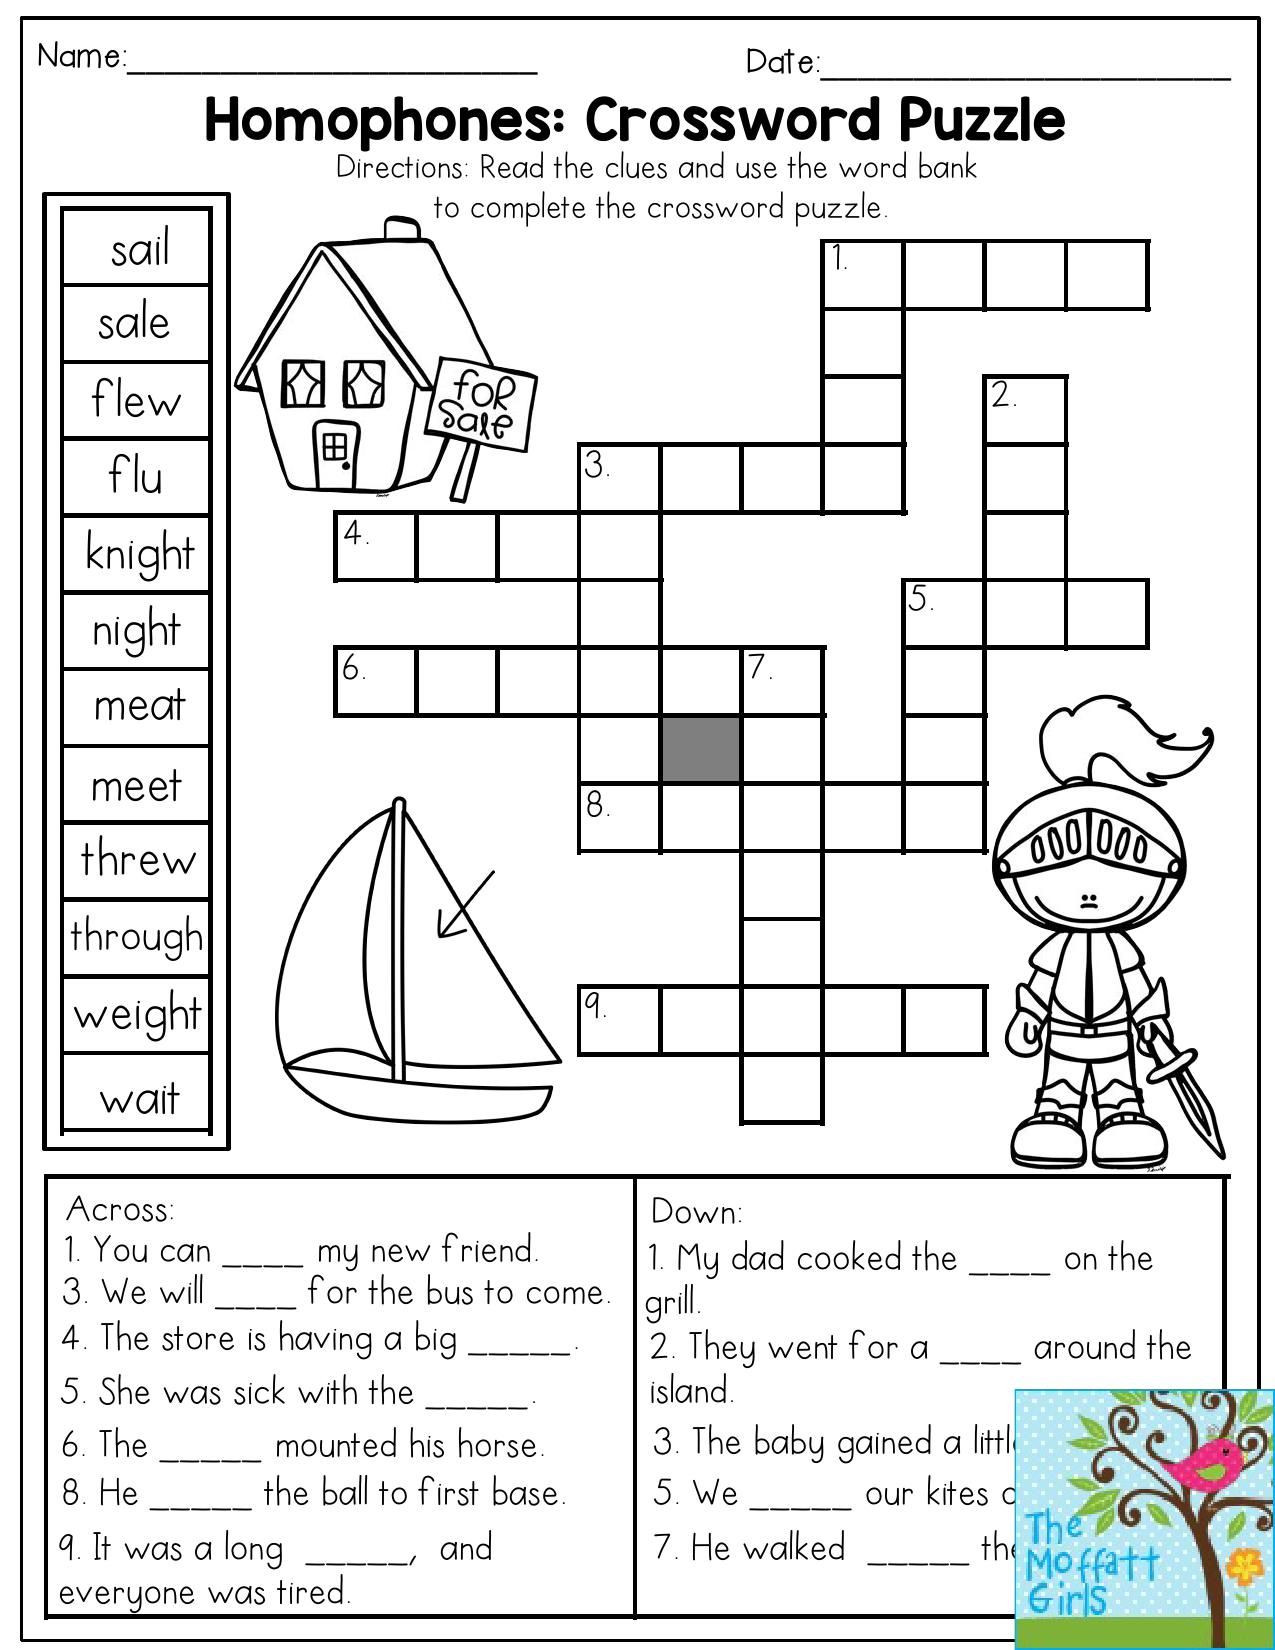 Homonyms Worksheets 5th Grade Homophones Crossword Puzzle Read the Clues and Use the